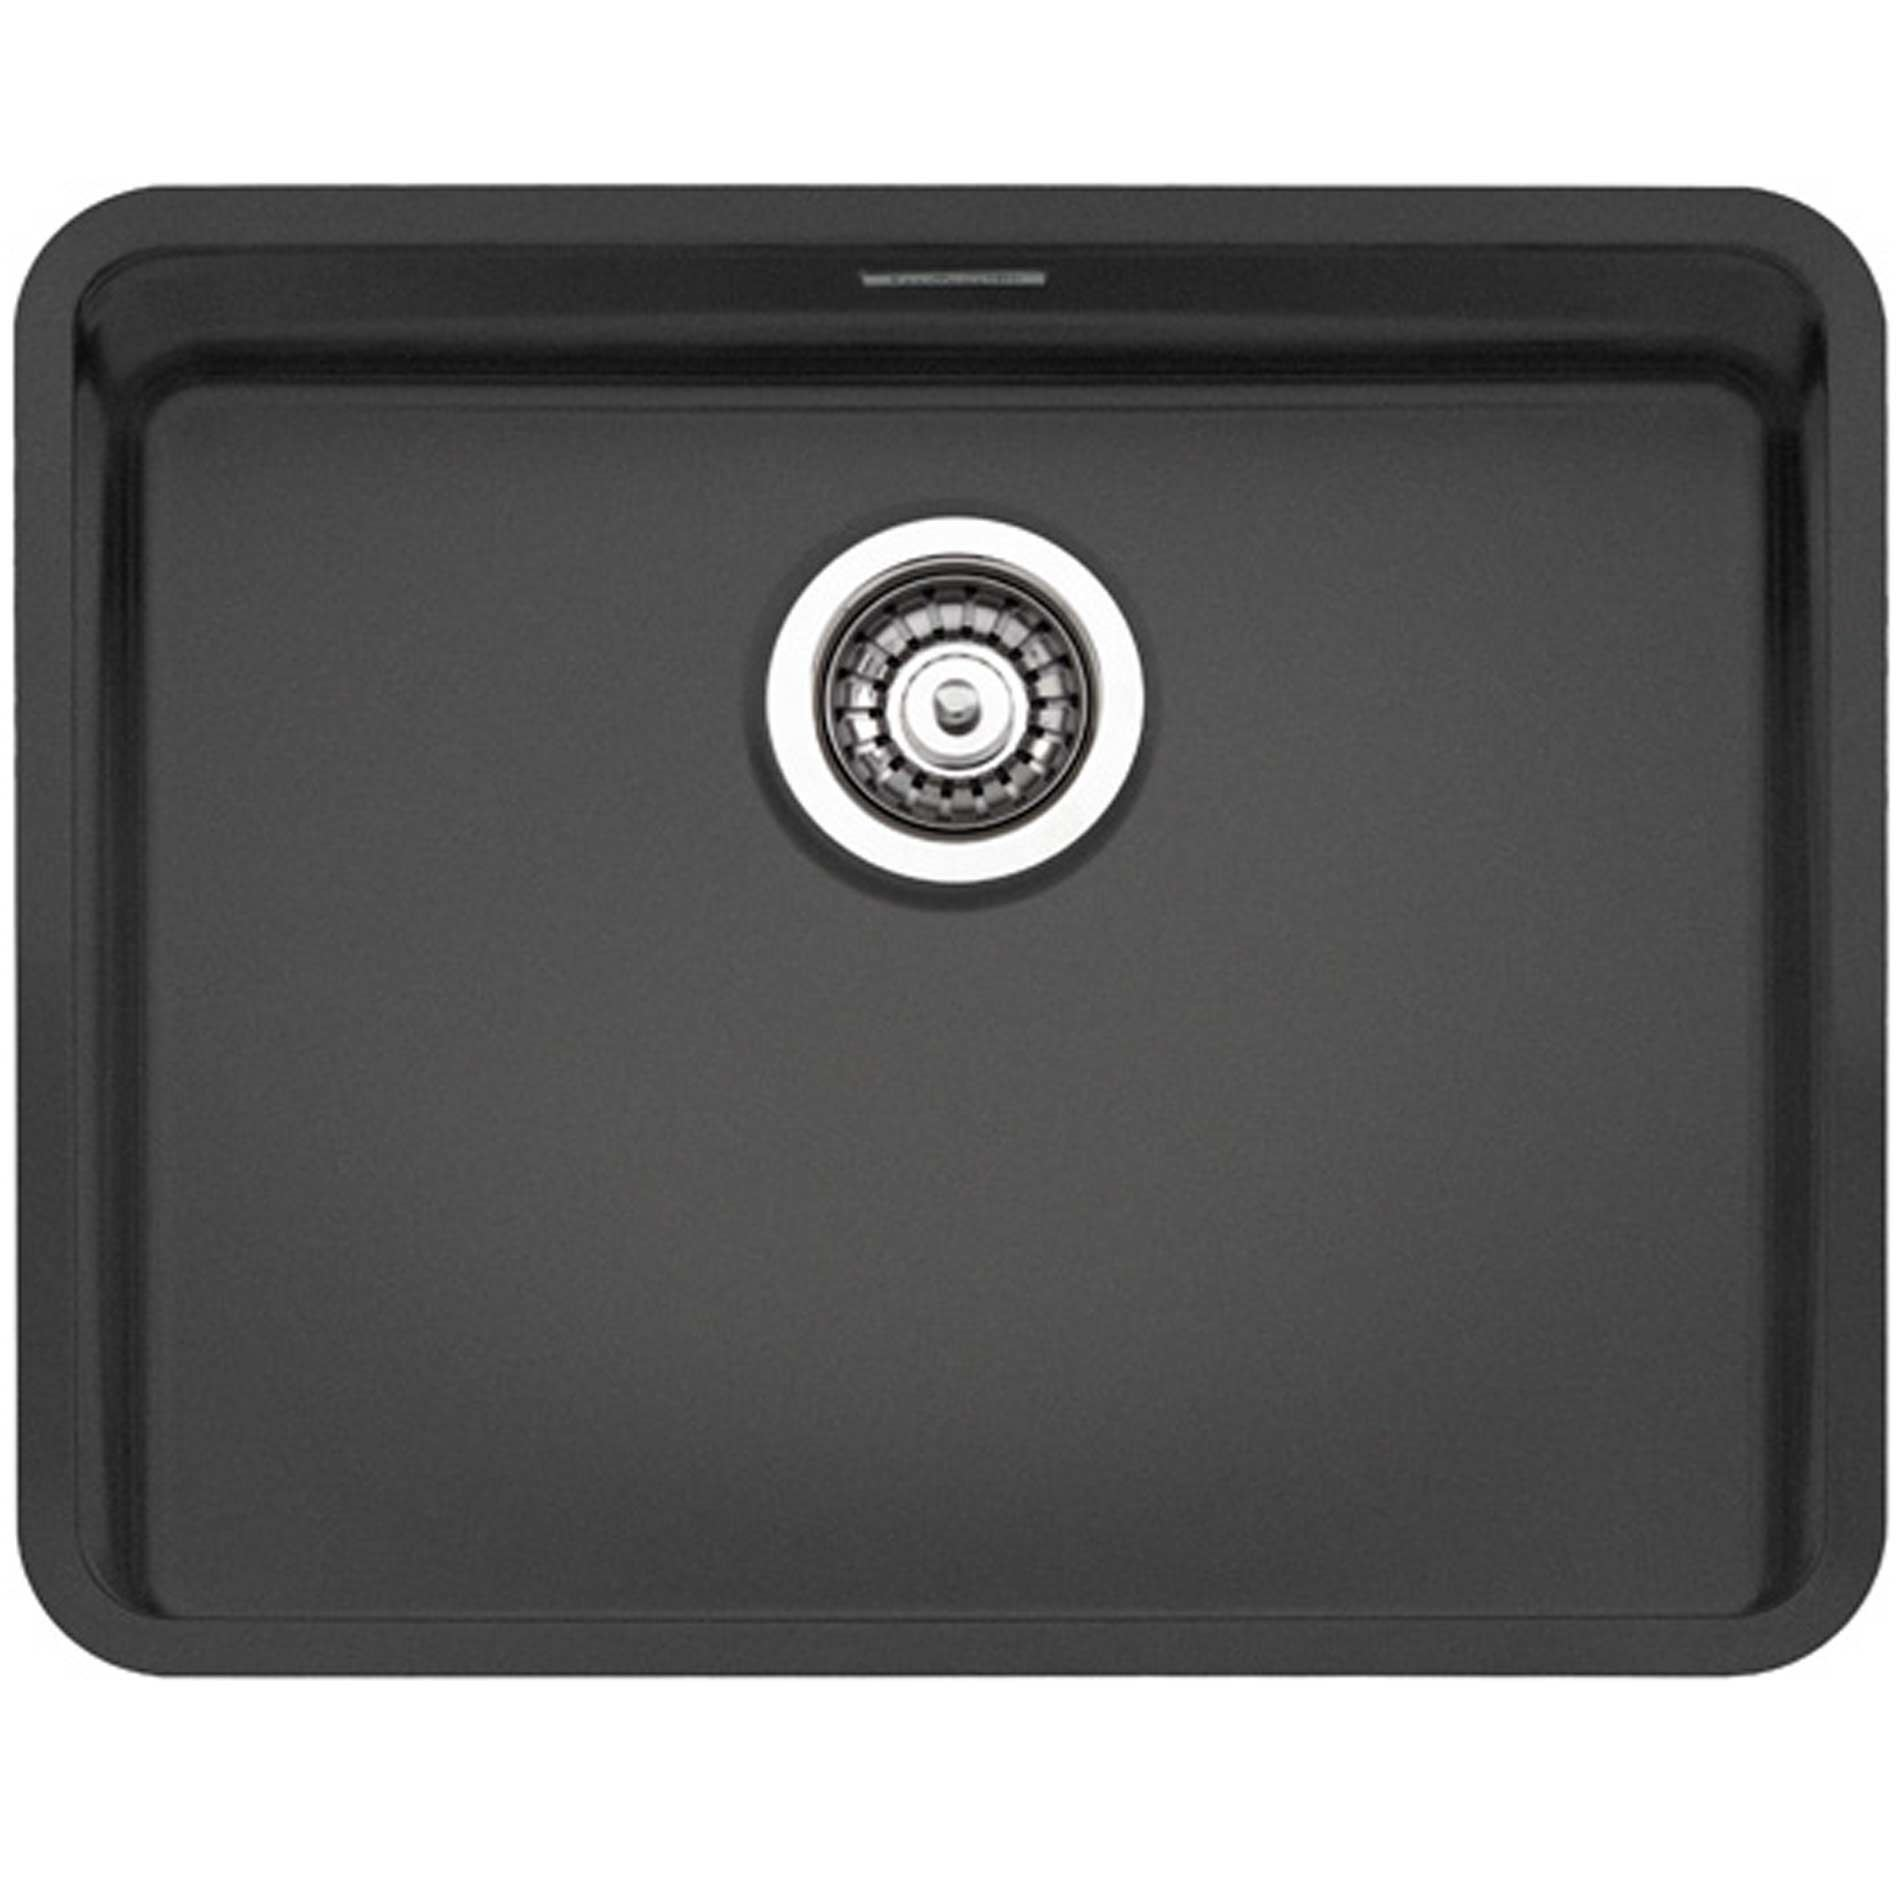 50*40 Reginox Ohio 50 X 40 Midnight Sky Stainless Steel Sink